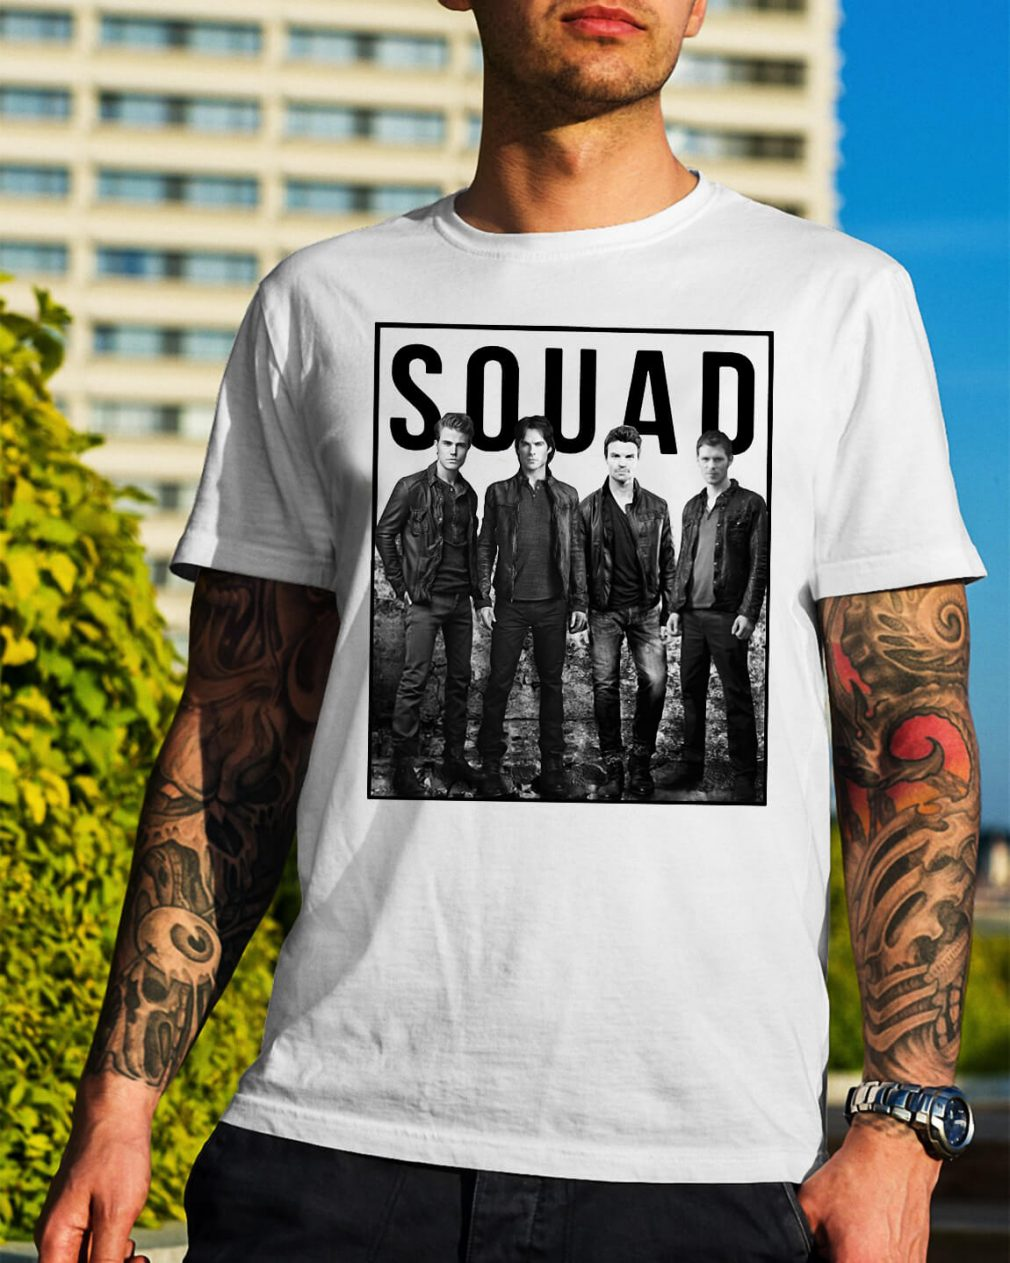 The Vampire Diaries Suicide Squad shirt